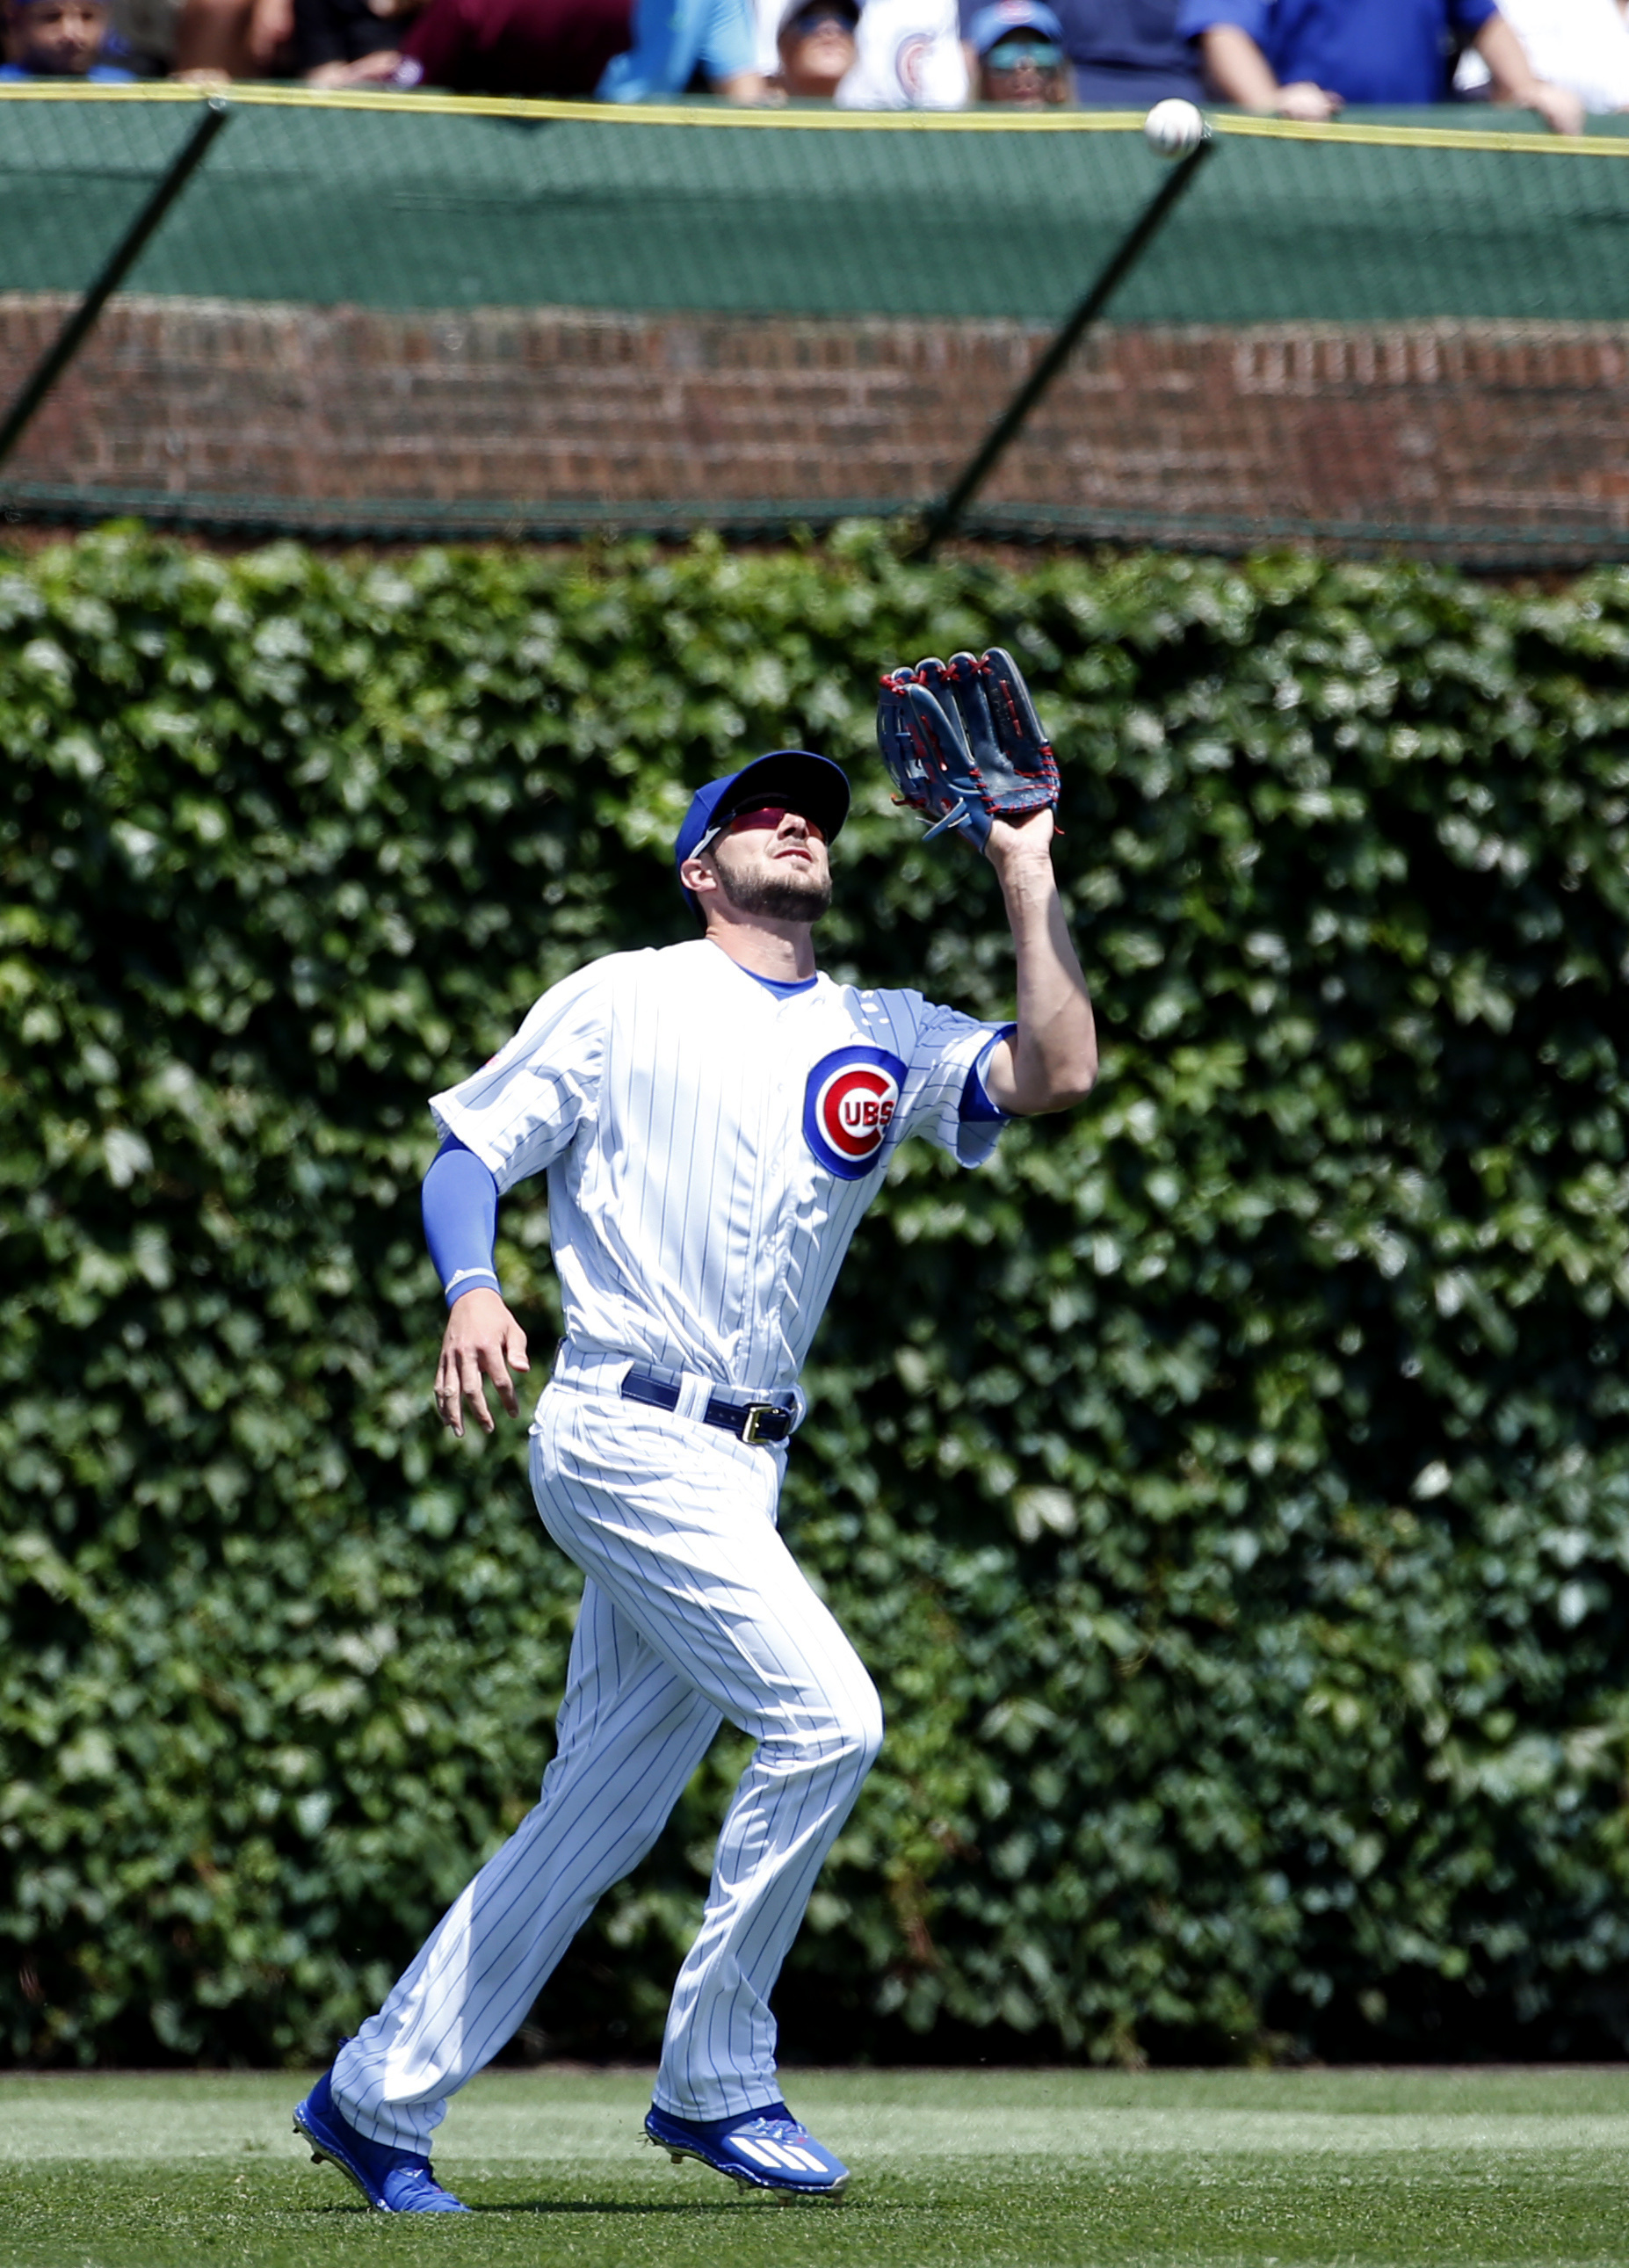 Chicago Cubs left fielder Kris Bryant catches a fly ball hit by Arizona Diamondbacks' Paul Goldschmidt during the first inning of a baseball game Friday, June 3, 2016, in Chicago. (AP Photo/Nam Y. Huh)